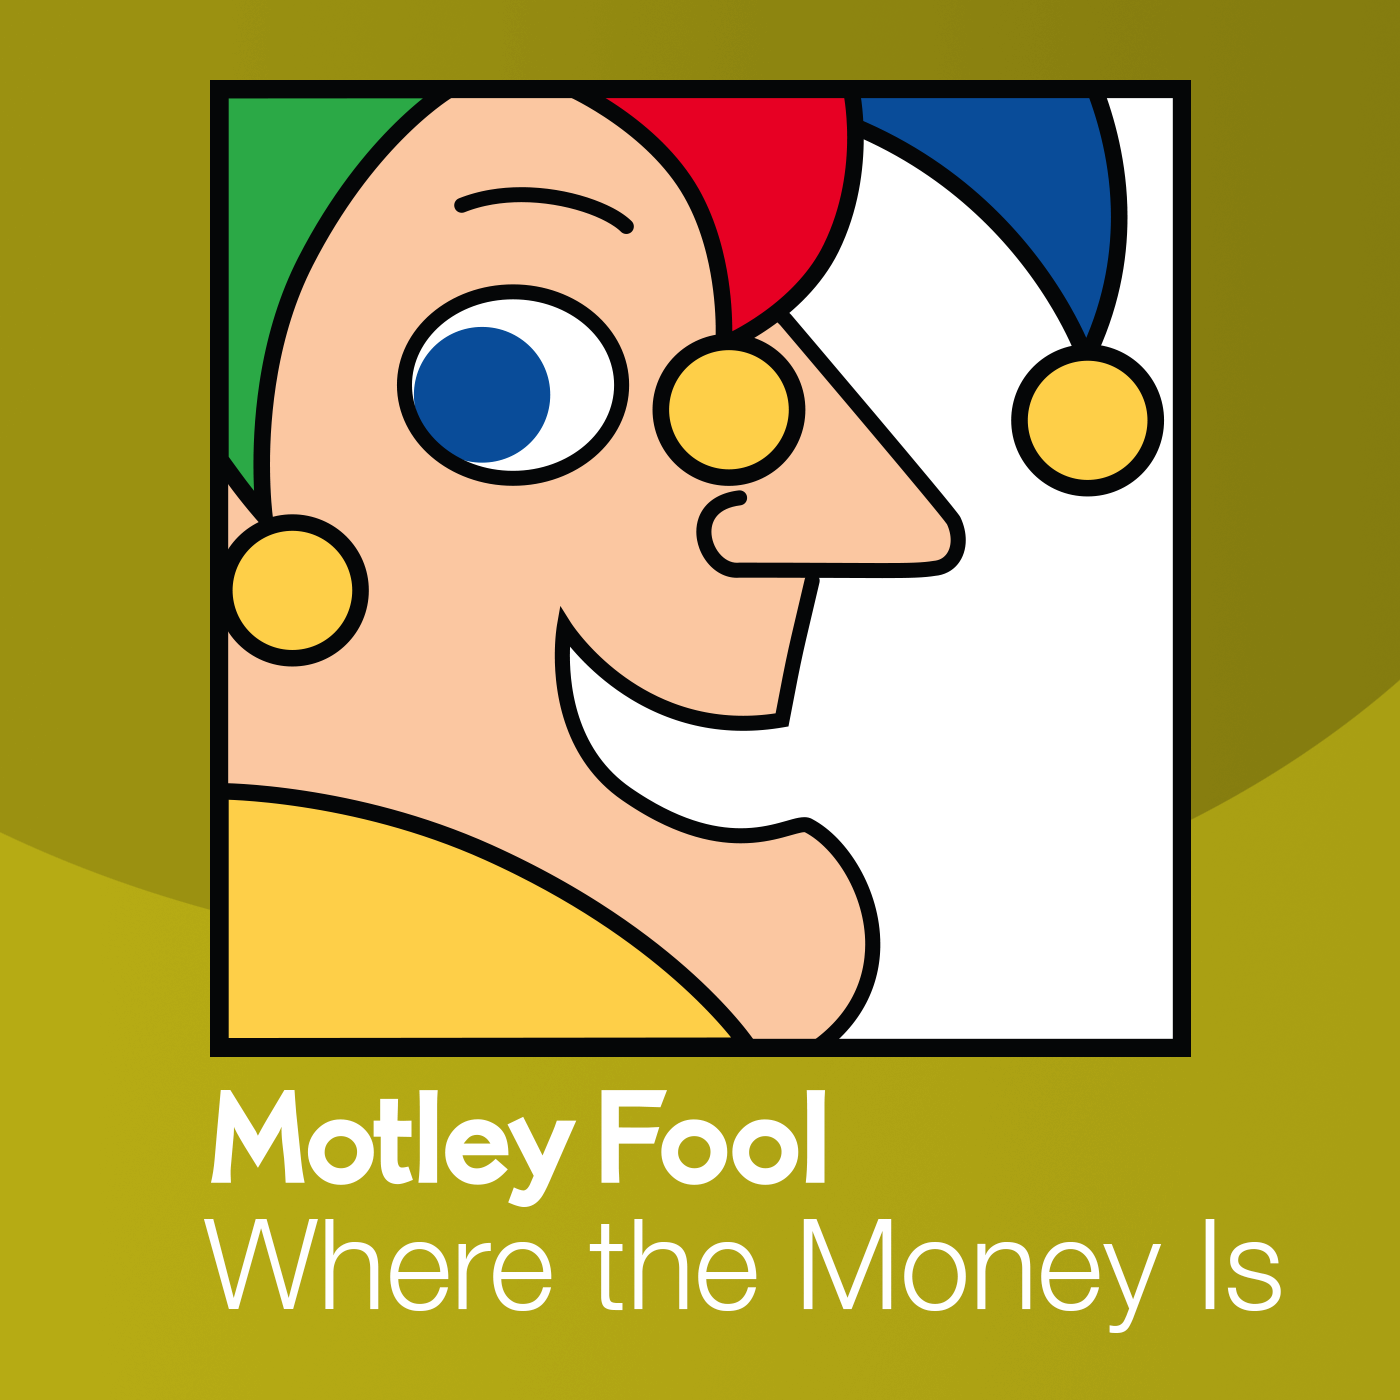 Where the Money Is 03.28.14